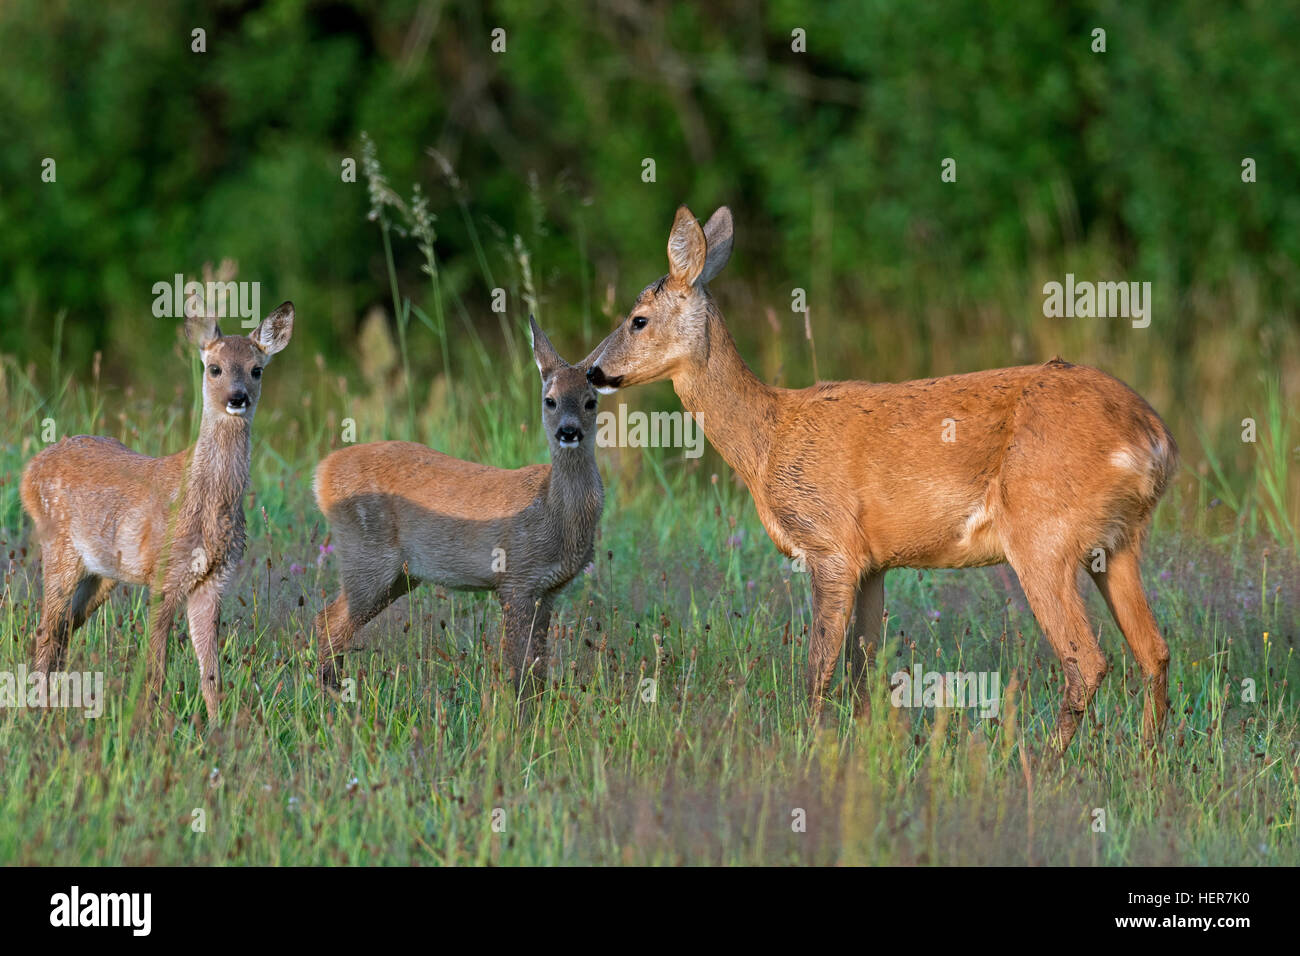 European roe deer (Capreolus capreolus) female with two fawns in grassland at forest's edge in summer - Stock Image